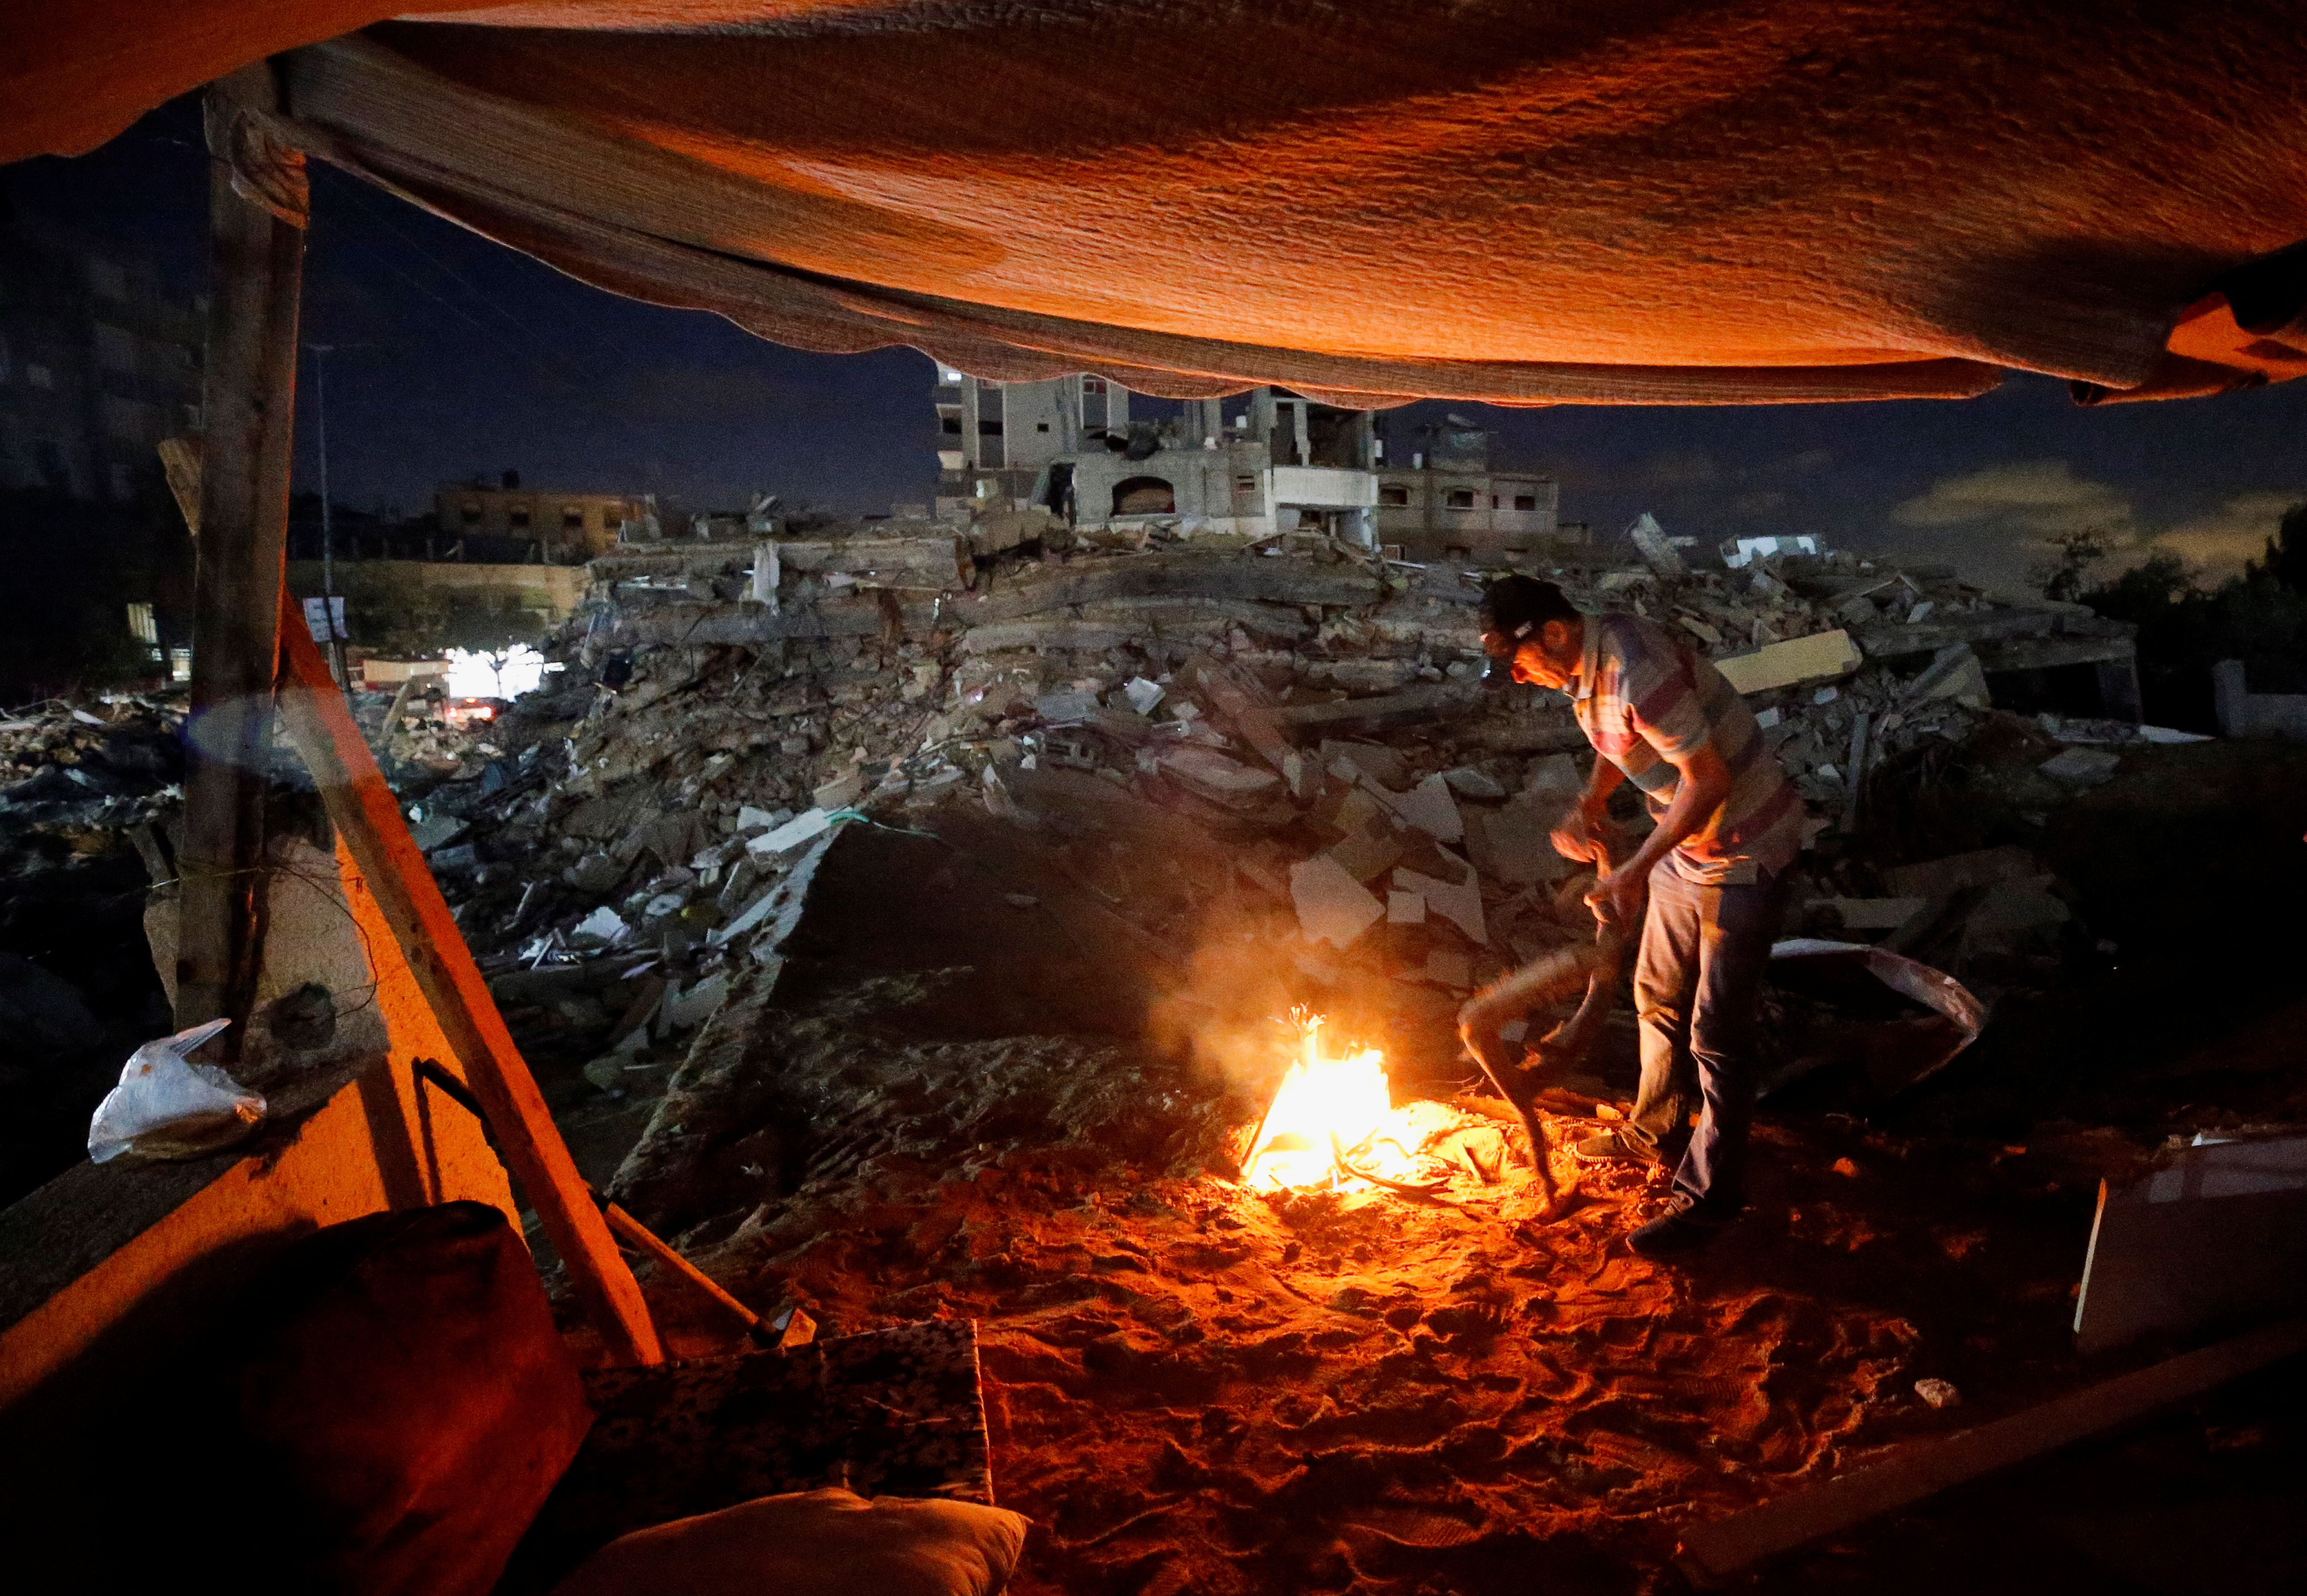 A Palestinian man lights a fire amid the rubble of his house which was destroyed by Israeli air strikes during the Israel-Hamas fighting, in Gaza Strip, May 23, 2021. REUTERS/Ahmed Jadallah.